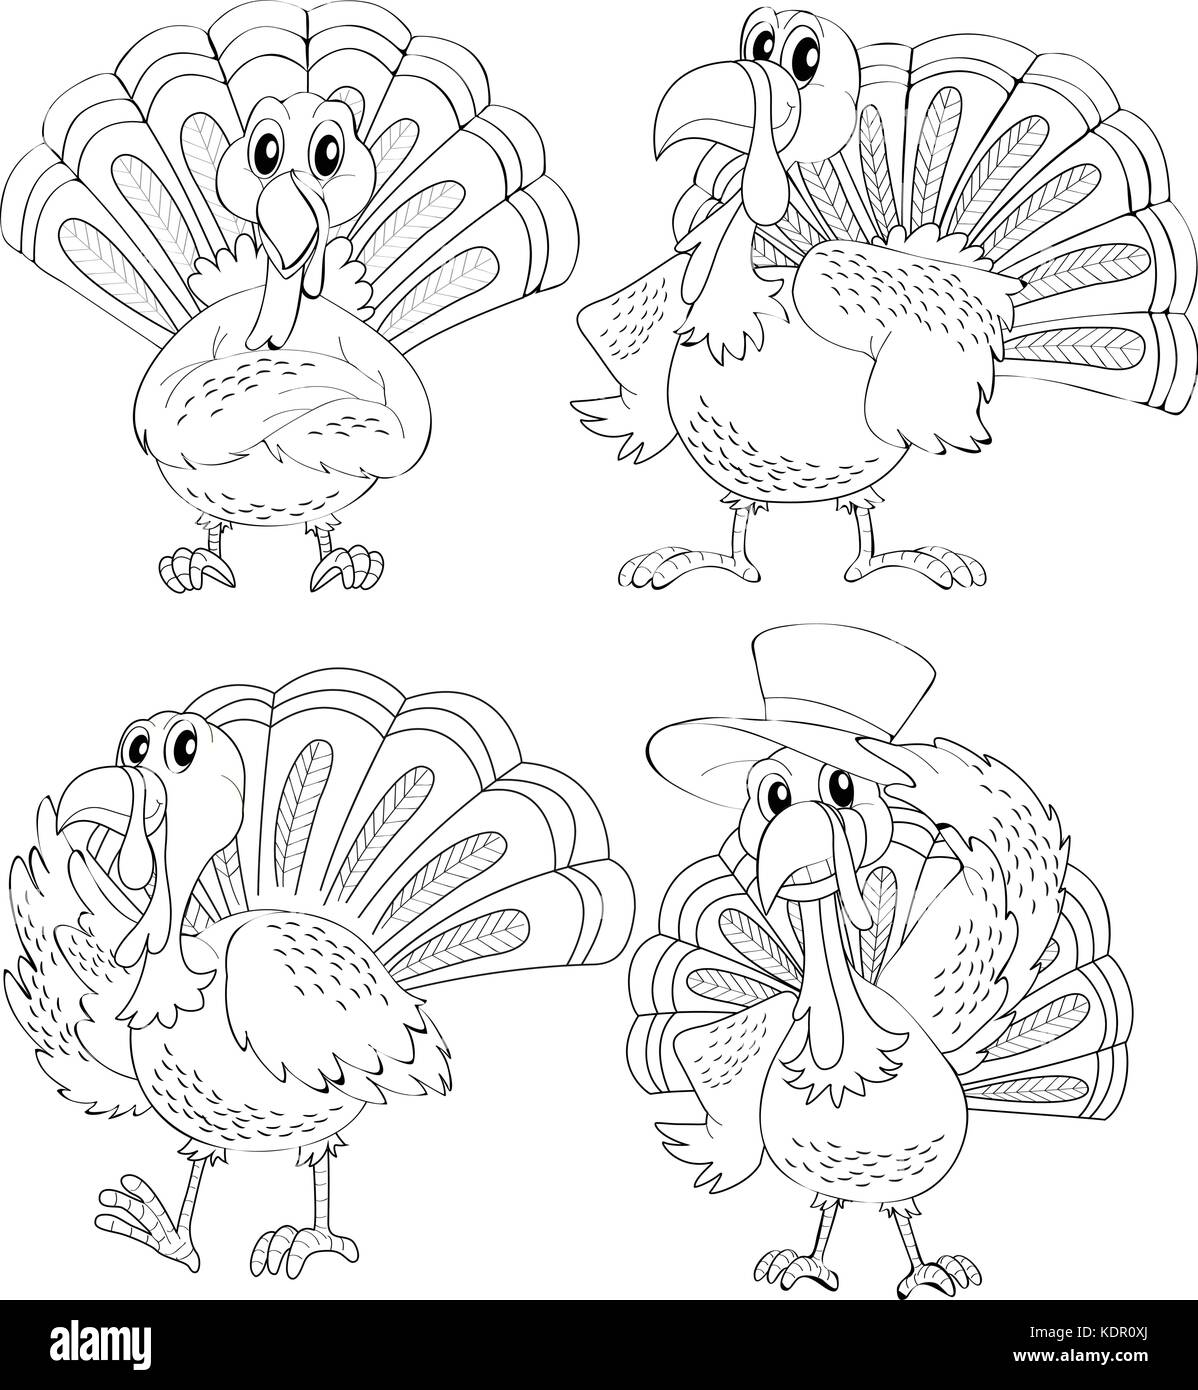 Doodle animal outline of turkey in four actions illustration Stock Vector